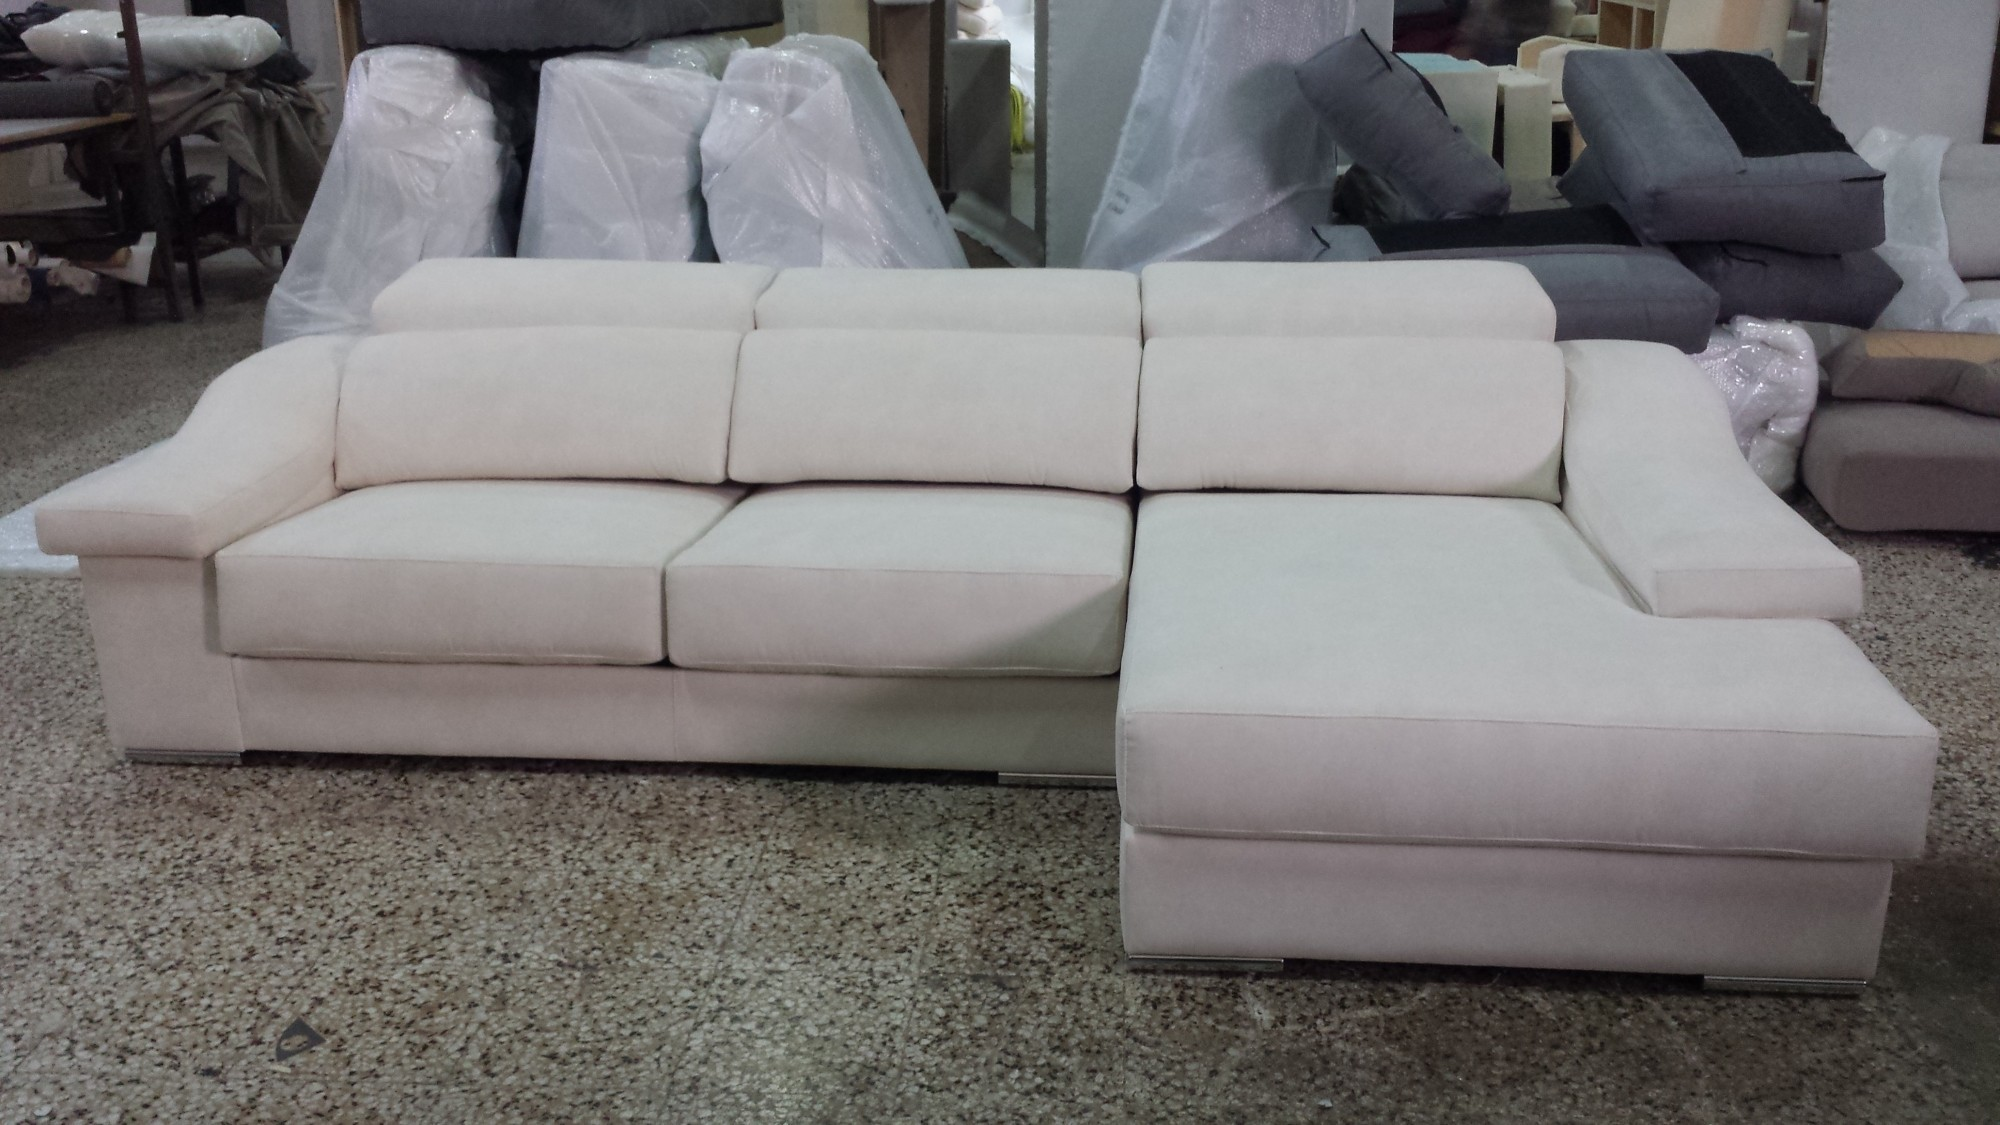 Fabricas sofas madrid baratos for Fabrica de muebles juveniles en madrid